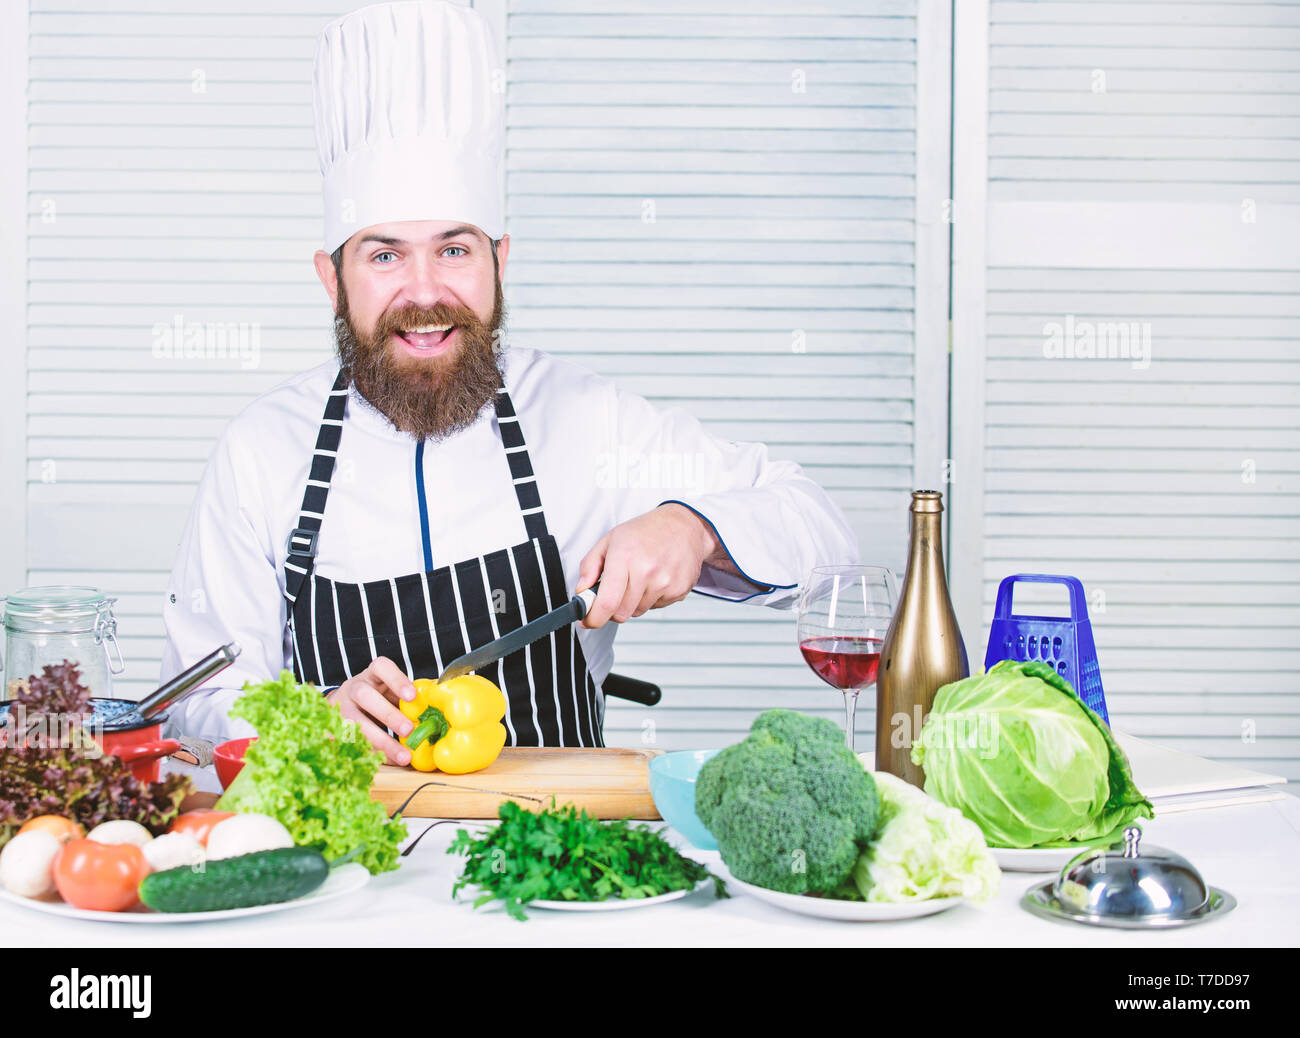 Chop ingredients. According to recipe. Prepare ingredients for cooking. Useful for significant amount of cooking methods. Basic cooking processes. Man master chef or amateur cooking healthy food. - Stock Image